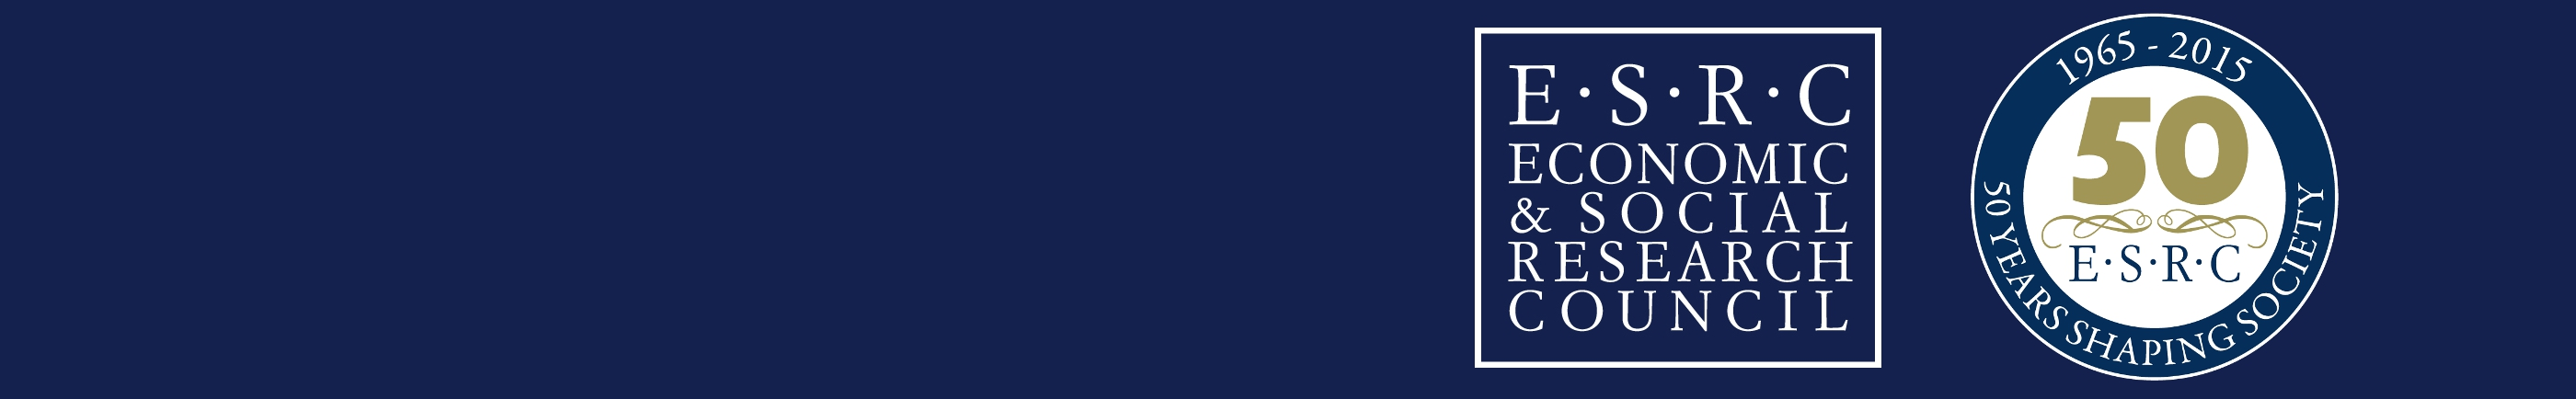 esrc logos on dark blue background